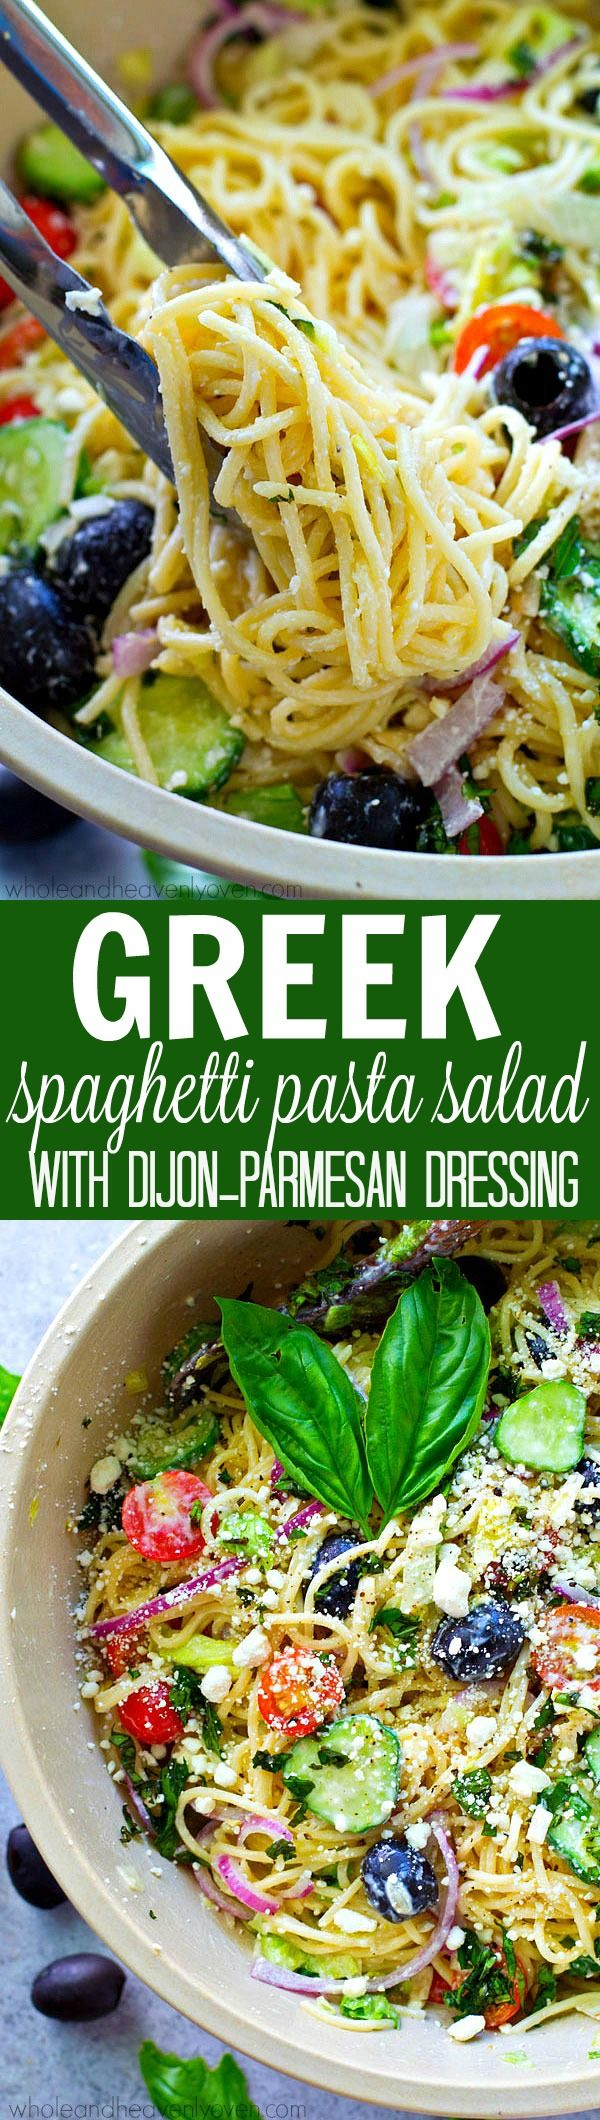 This loaded spaghetti pasta salad has ALL the Greek food lover's works! It's super-easy to throw together for a quick weeknight dinner or cookout side dish.